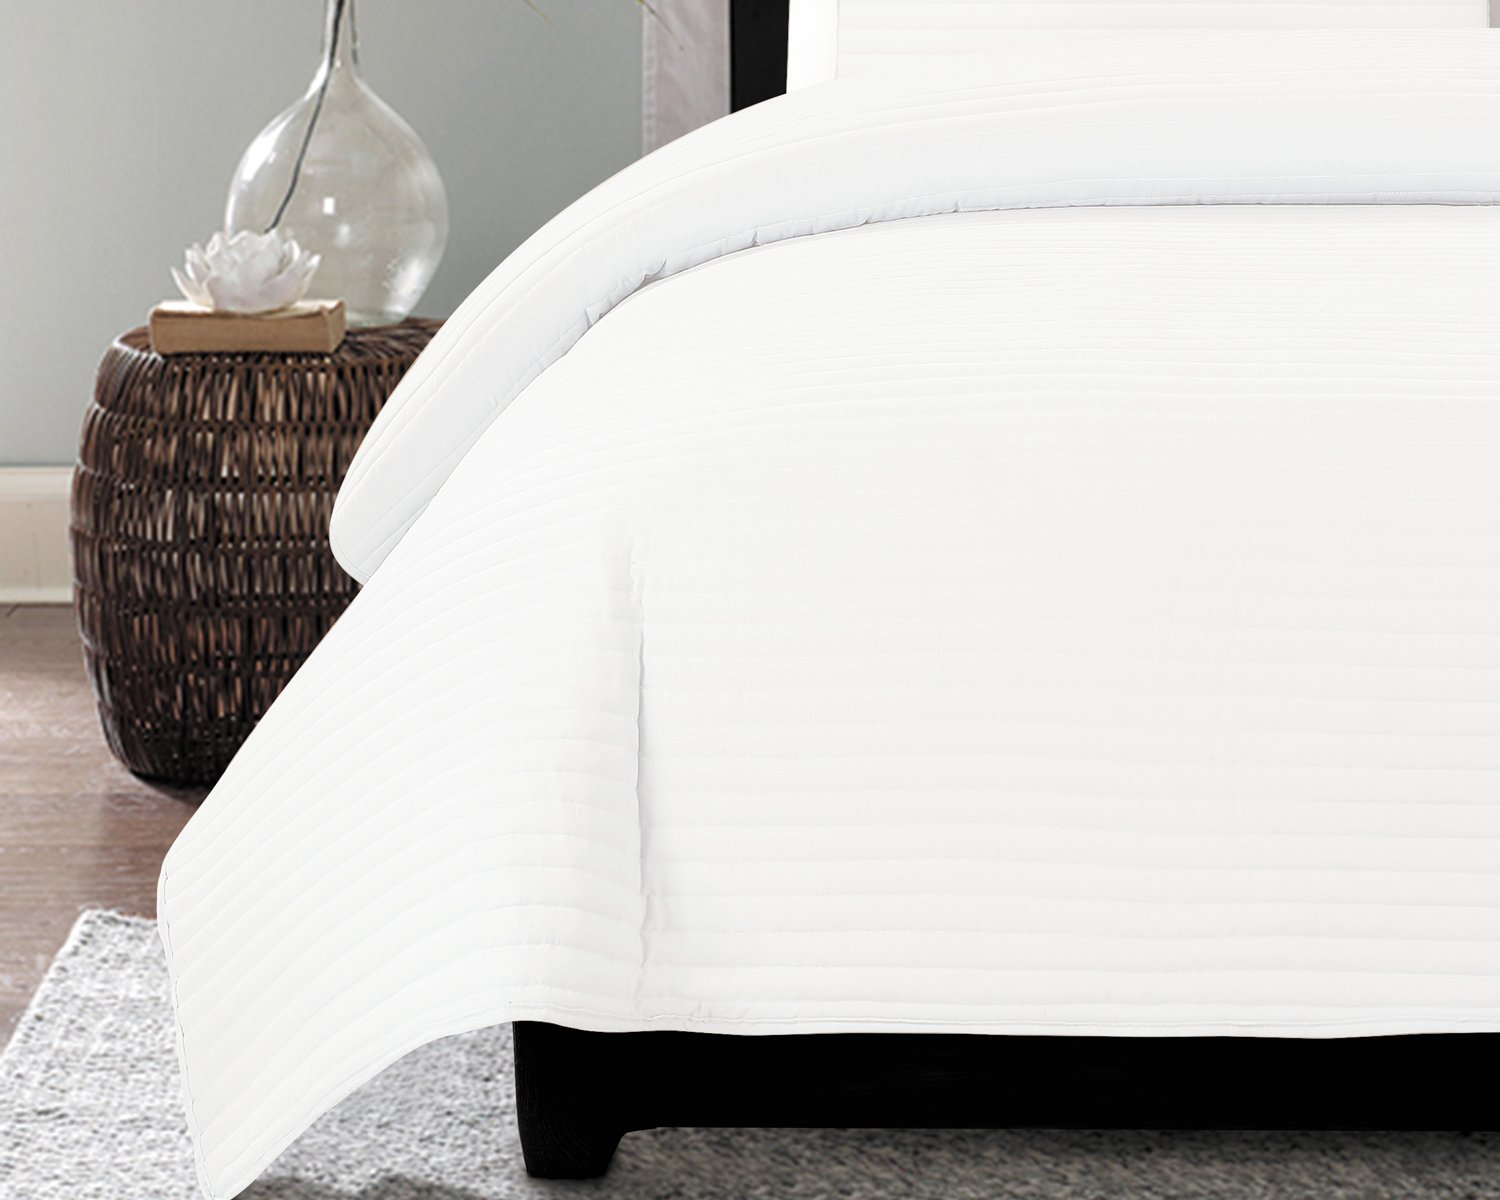 NC Home Fashions One Inch Channel quilt set, King, Bright White by NC Home Fashions Inc. (Image #2)